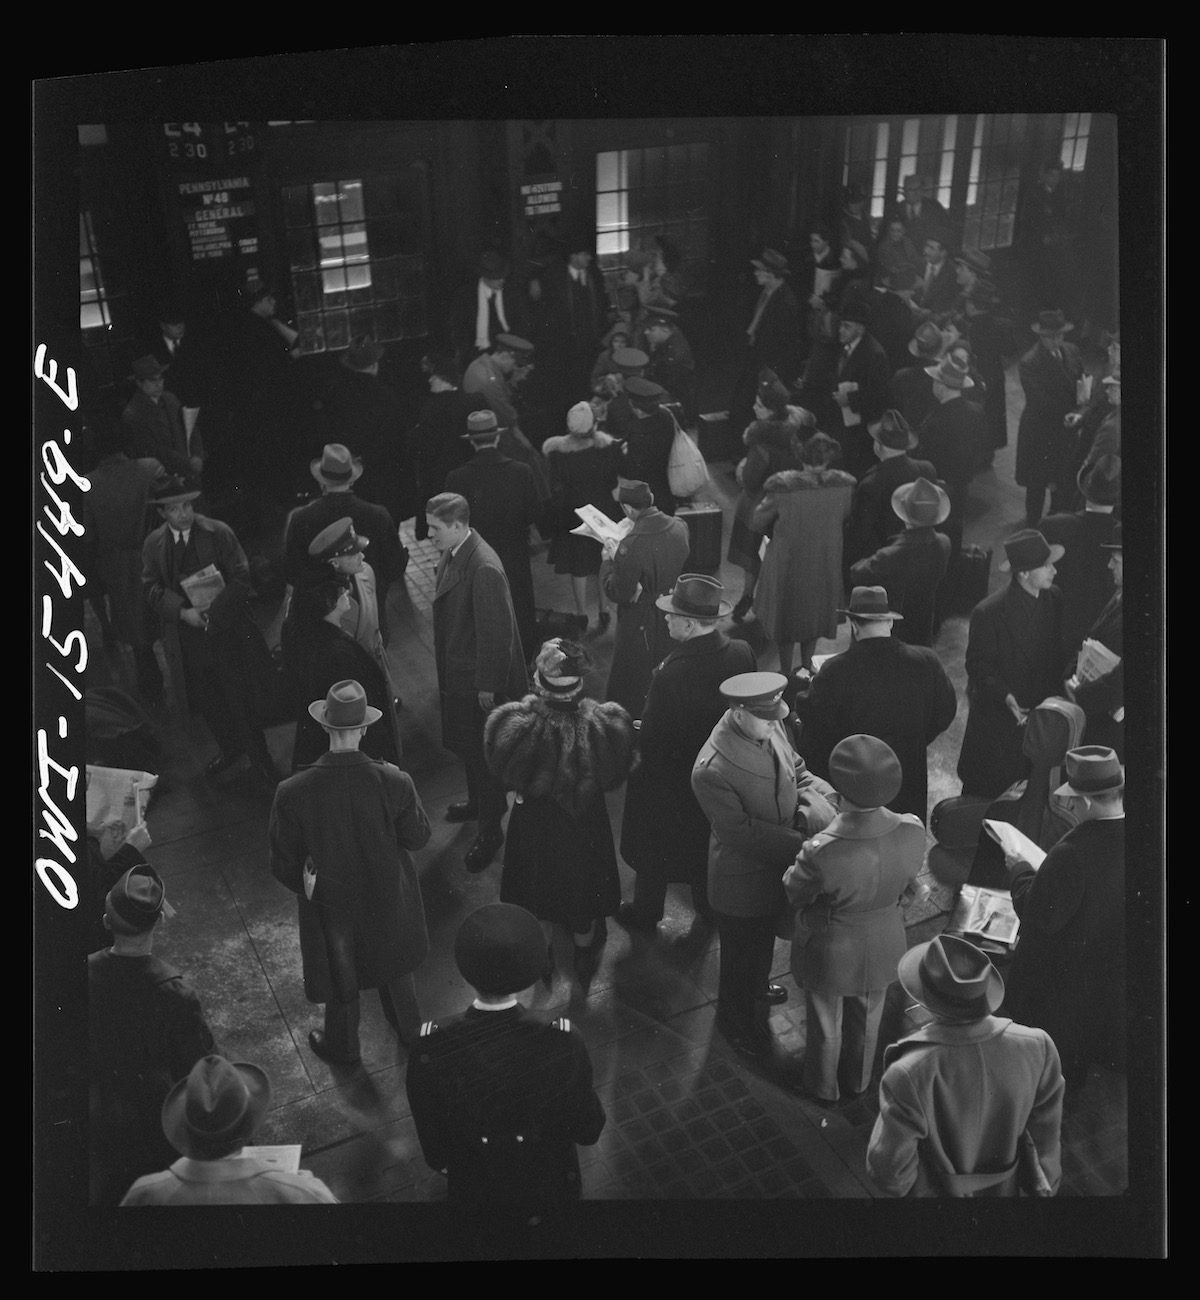 Union Station Chicago 1943 by Jack Delano